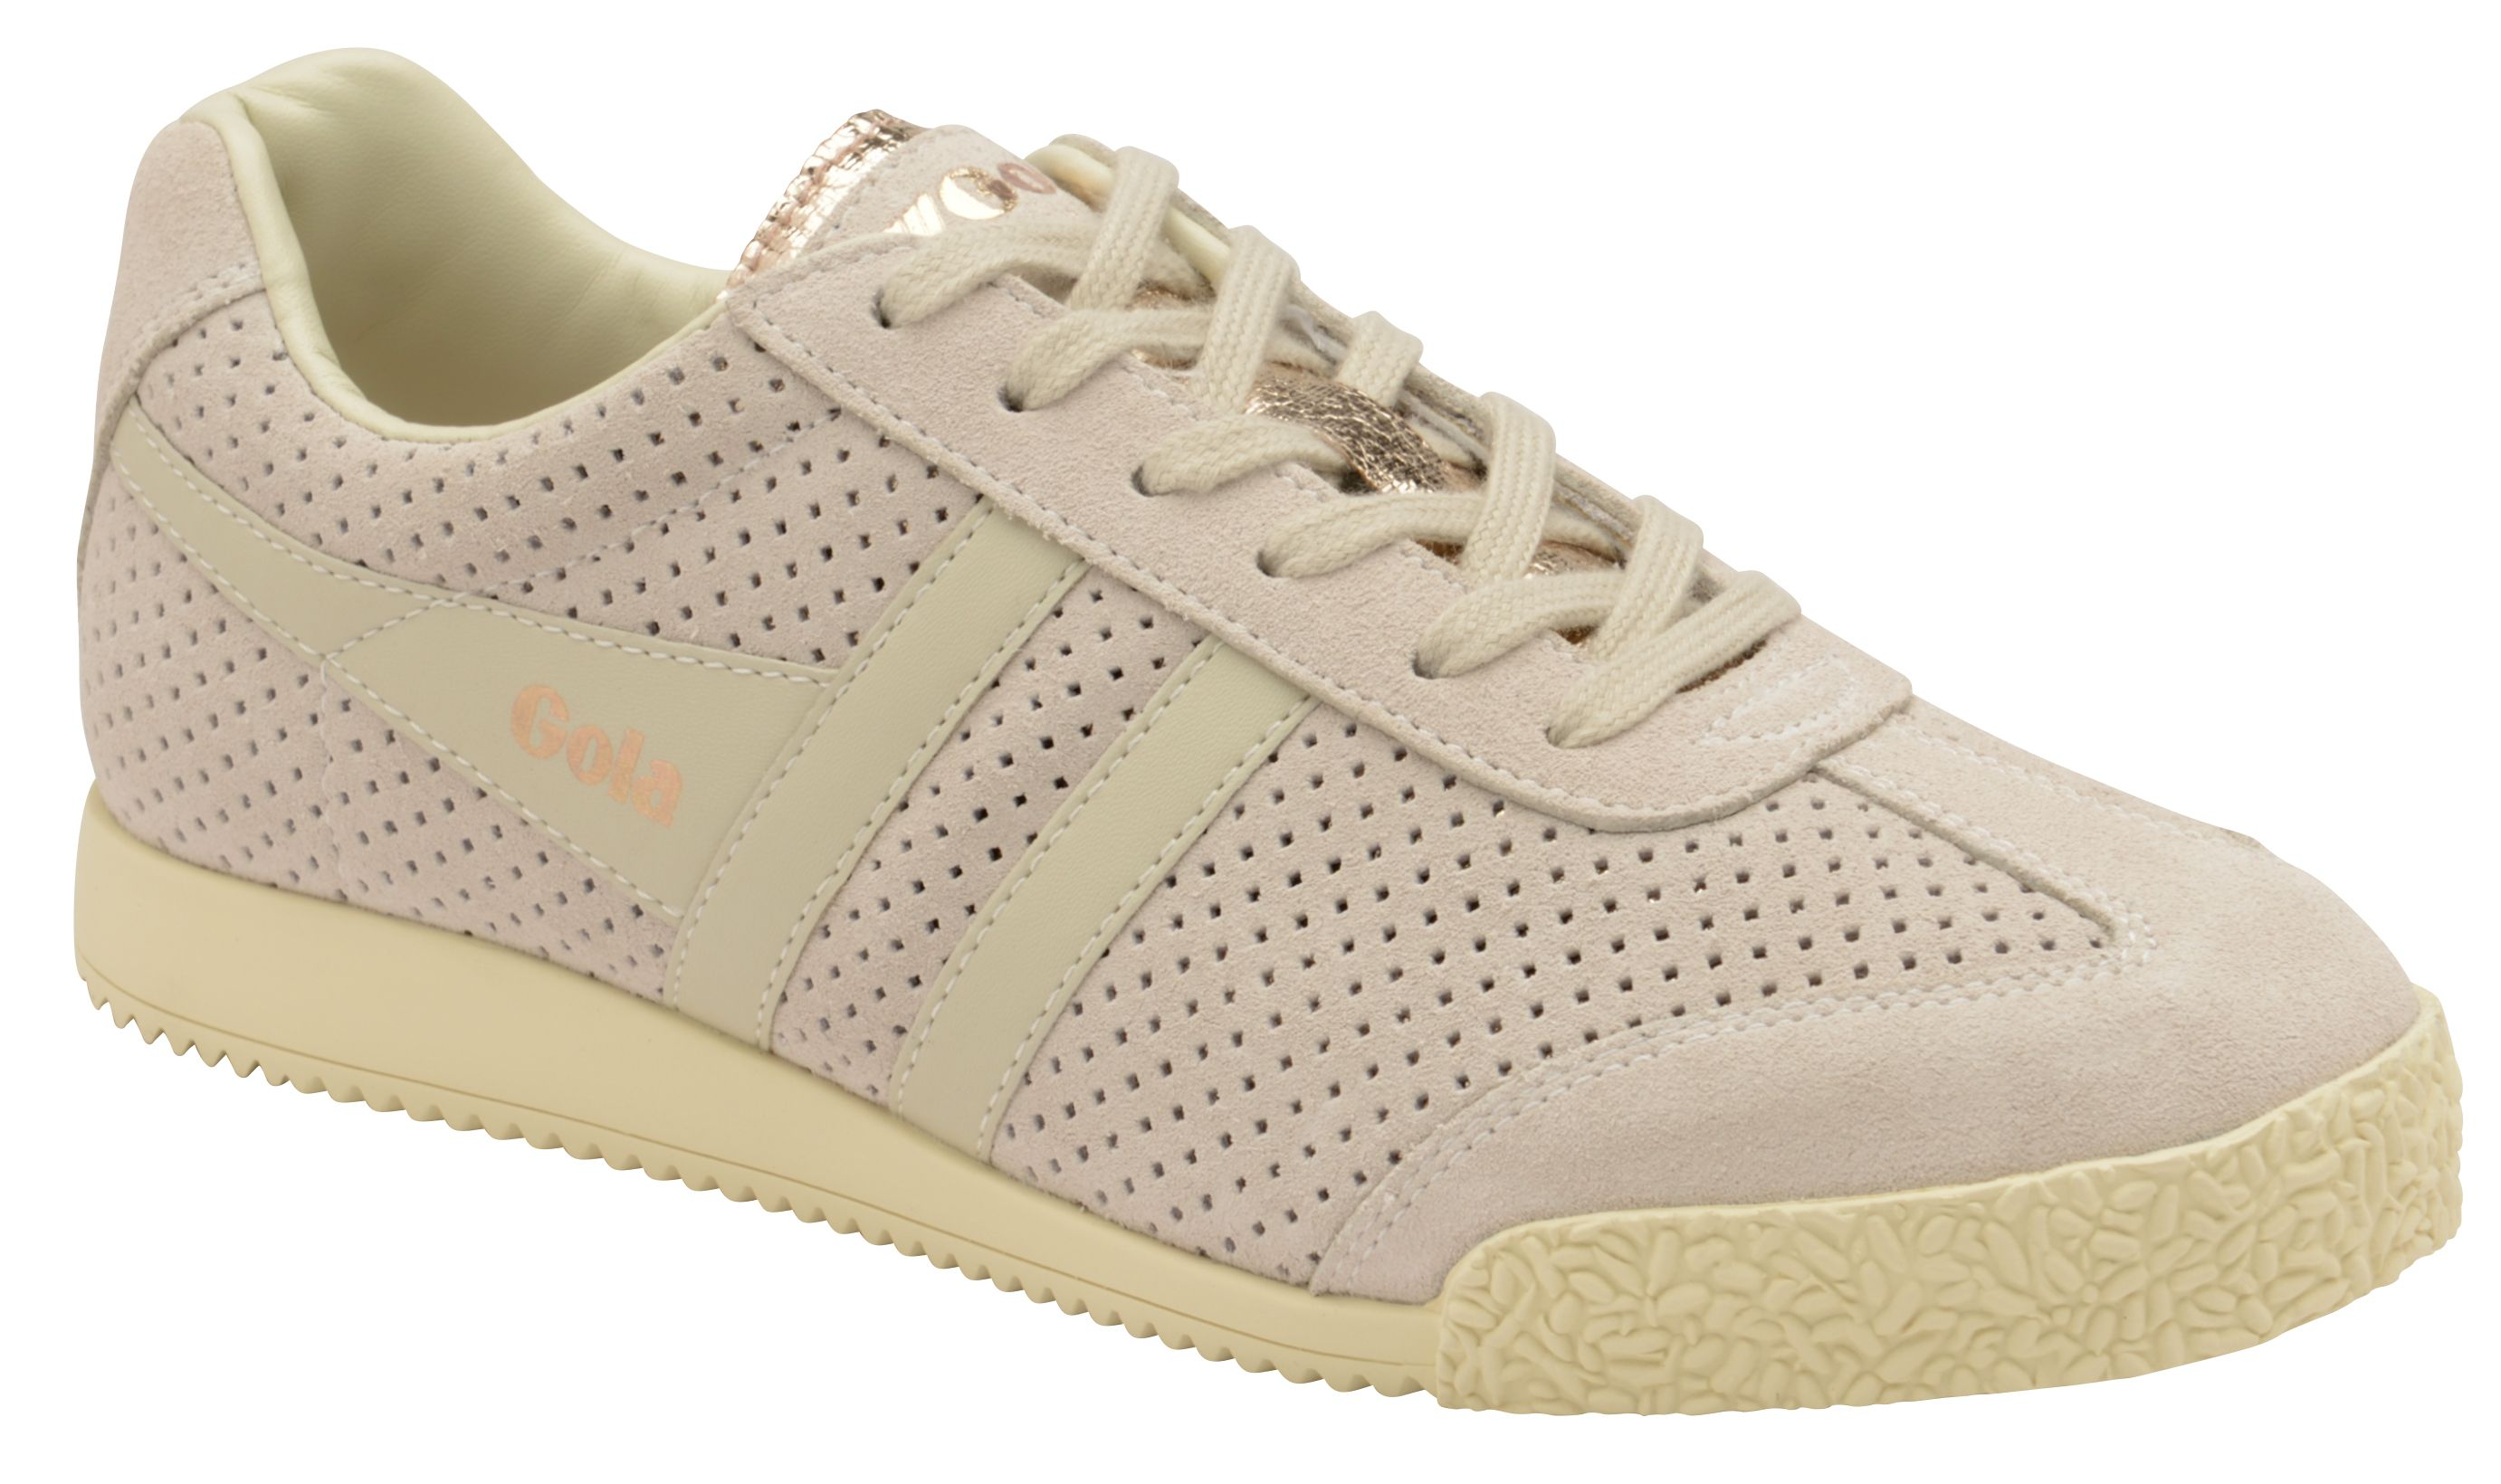 Gola Harrier Glimmer Suede Trainers, Rose Gold